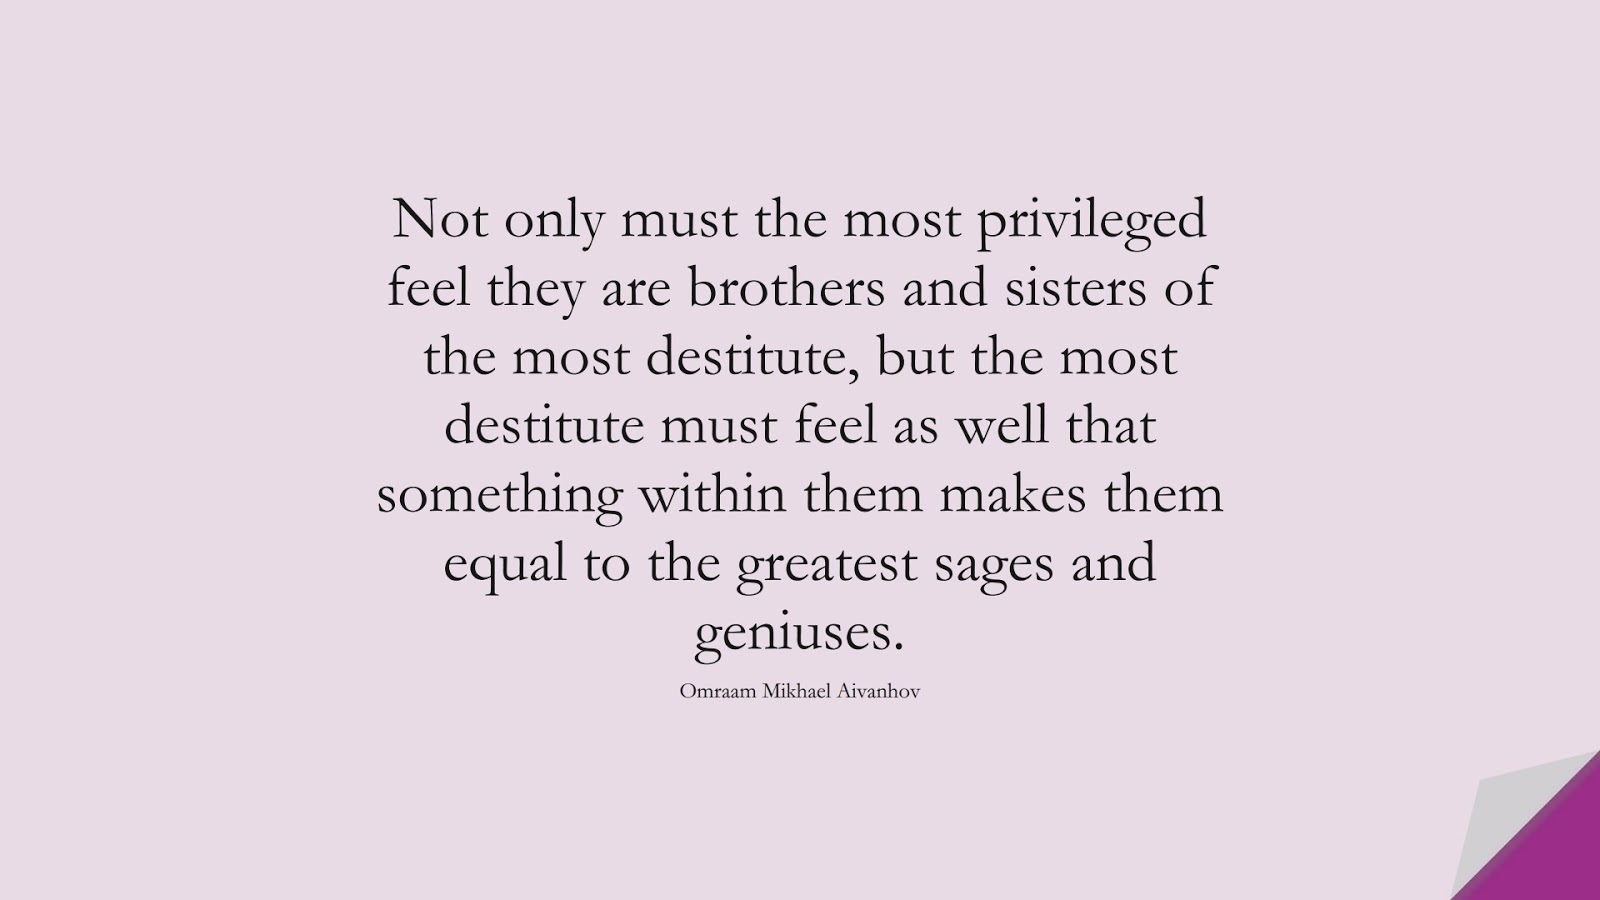 Not only must the most privileged feel they are brothers and sisters of the most destitute, but the most destitute must feel as well that something within them makes them equal to the greatest sages and geniuses. (Omraam Mikhael Aivanhov);  #SpiritQuotes